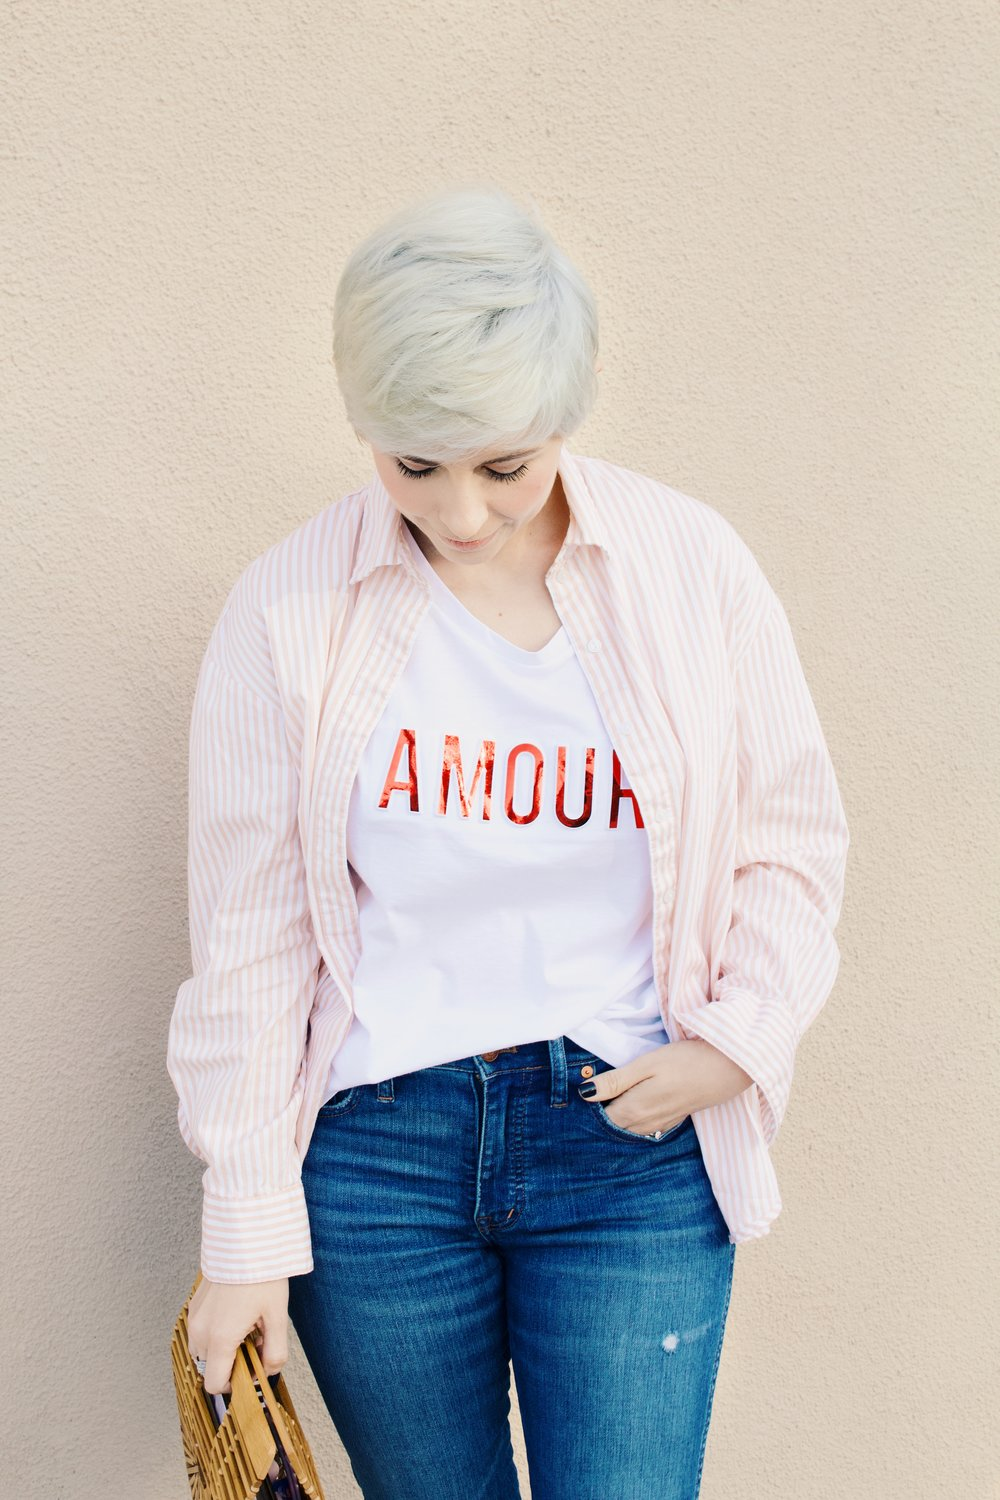 bamboobaglibierstylespring2018pinkjeanscasualoutfitideas_5.JPG